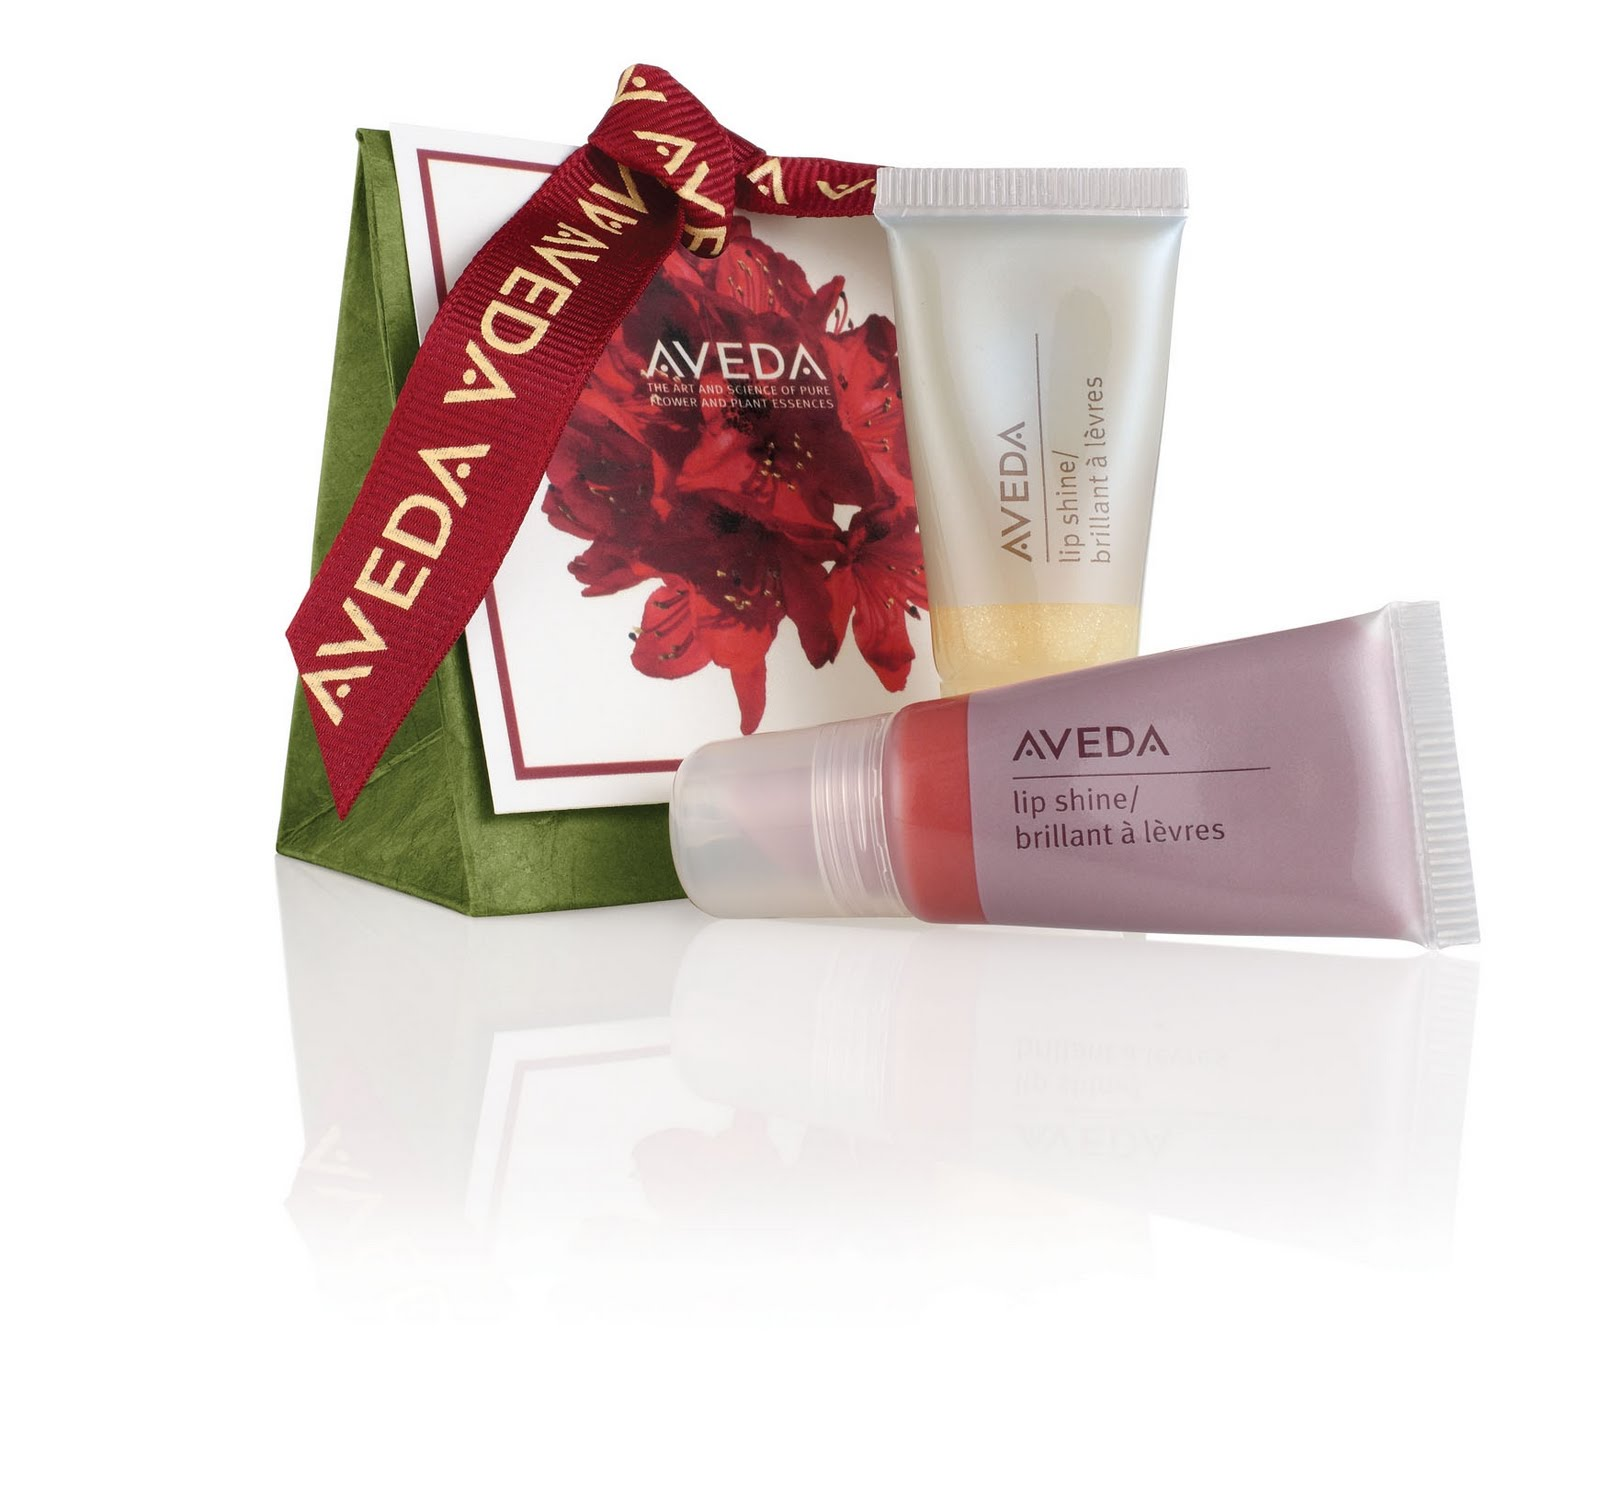 Aveda Holiday 2011 - The Gift That Let's Them Shine - AVEDA Institute Florida